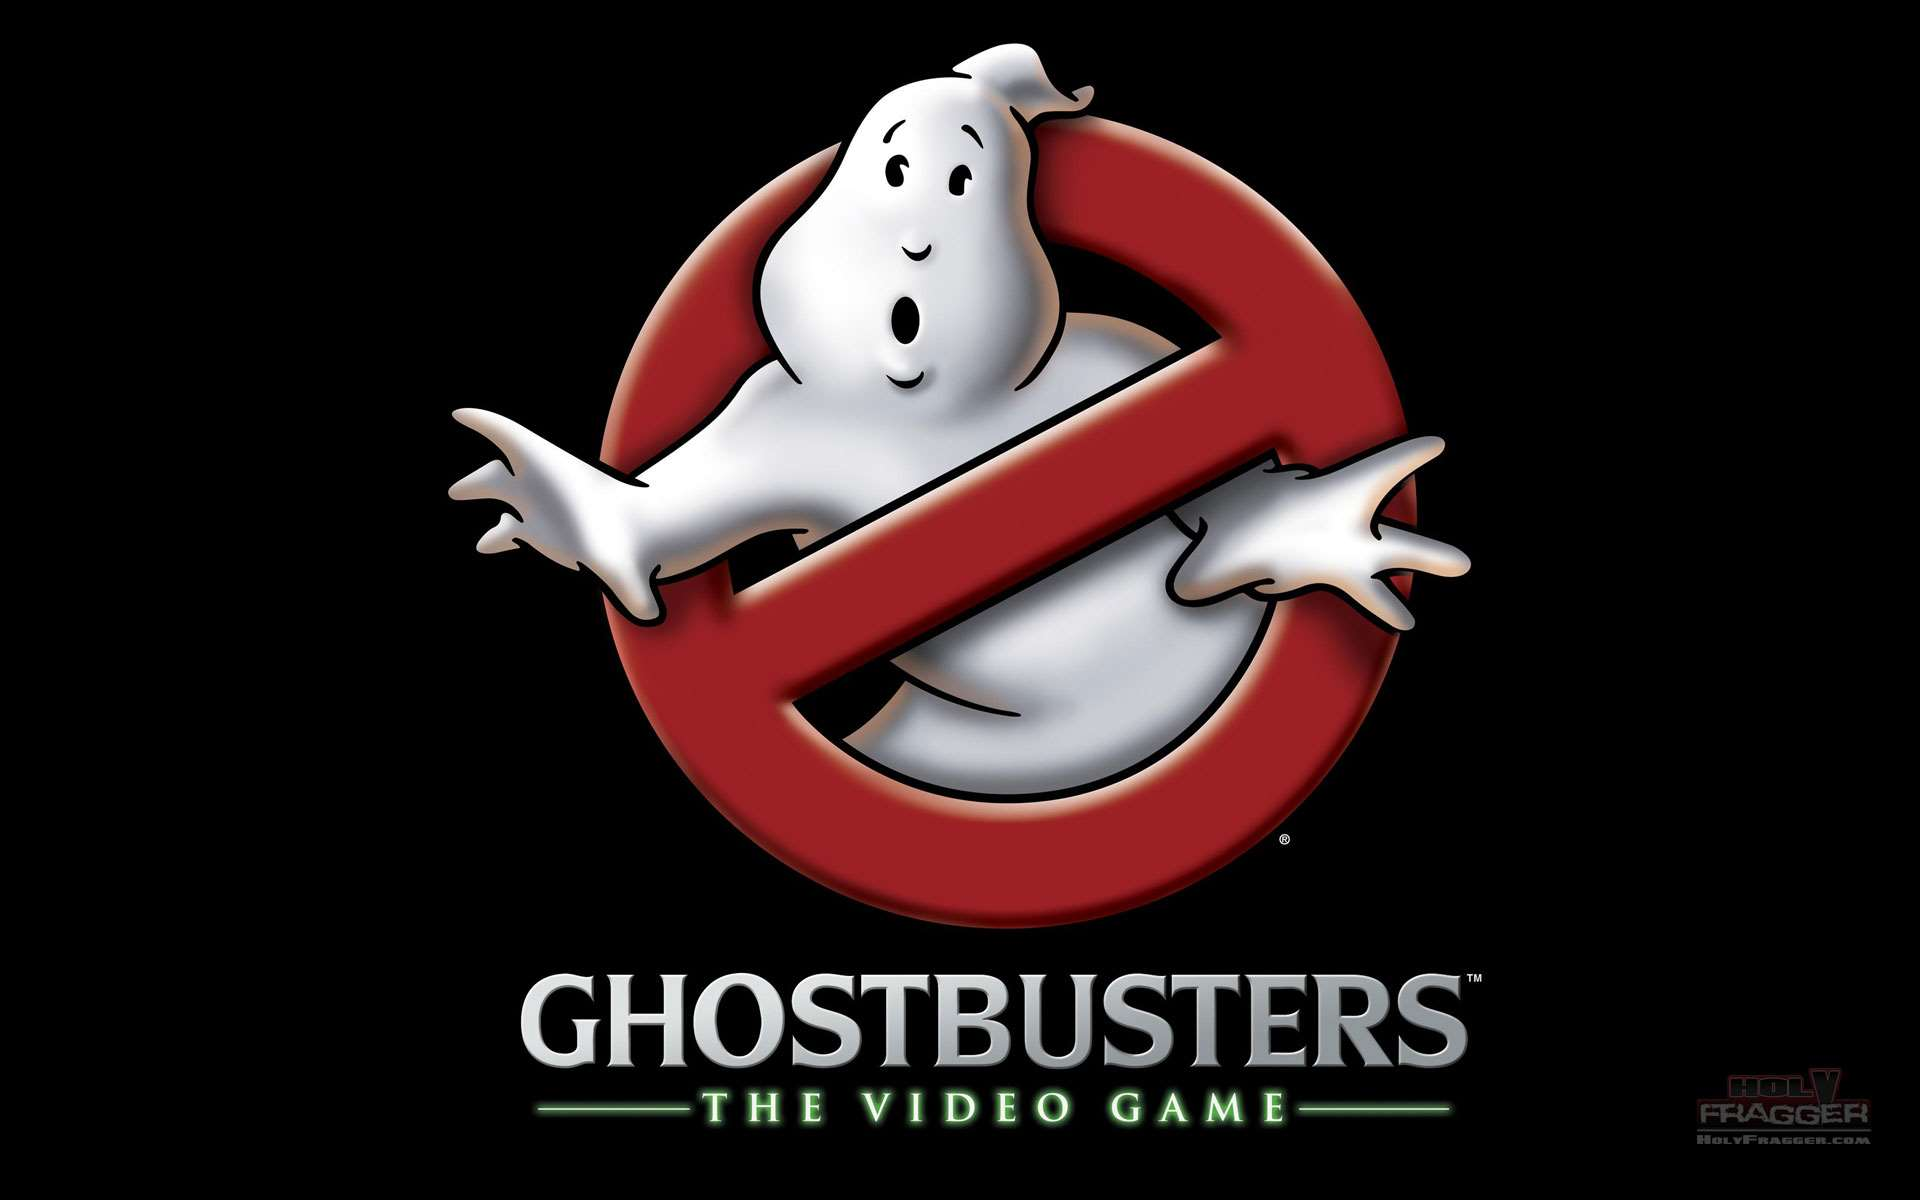 Ghostbusters: The Video Game Wallpapers 3